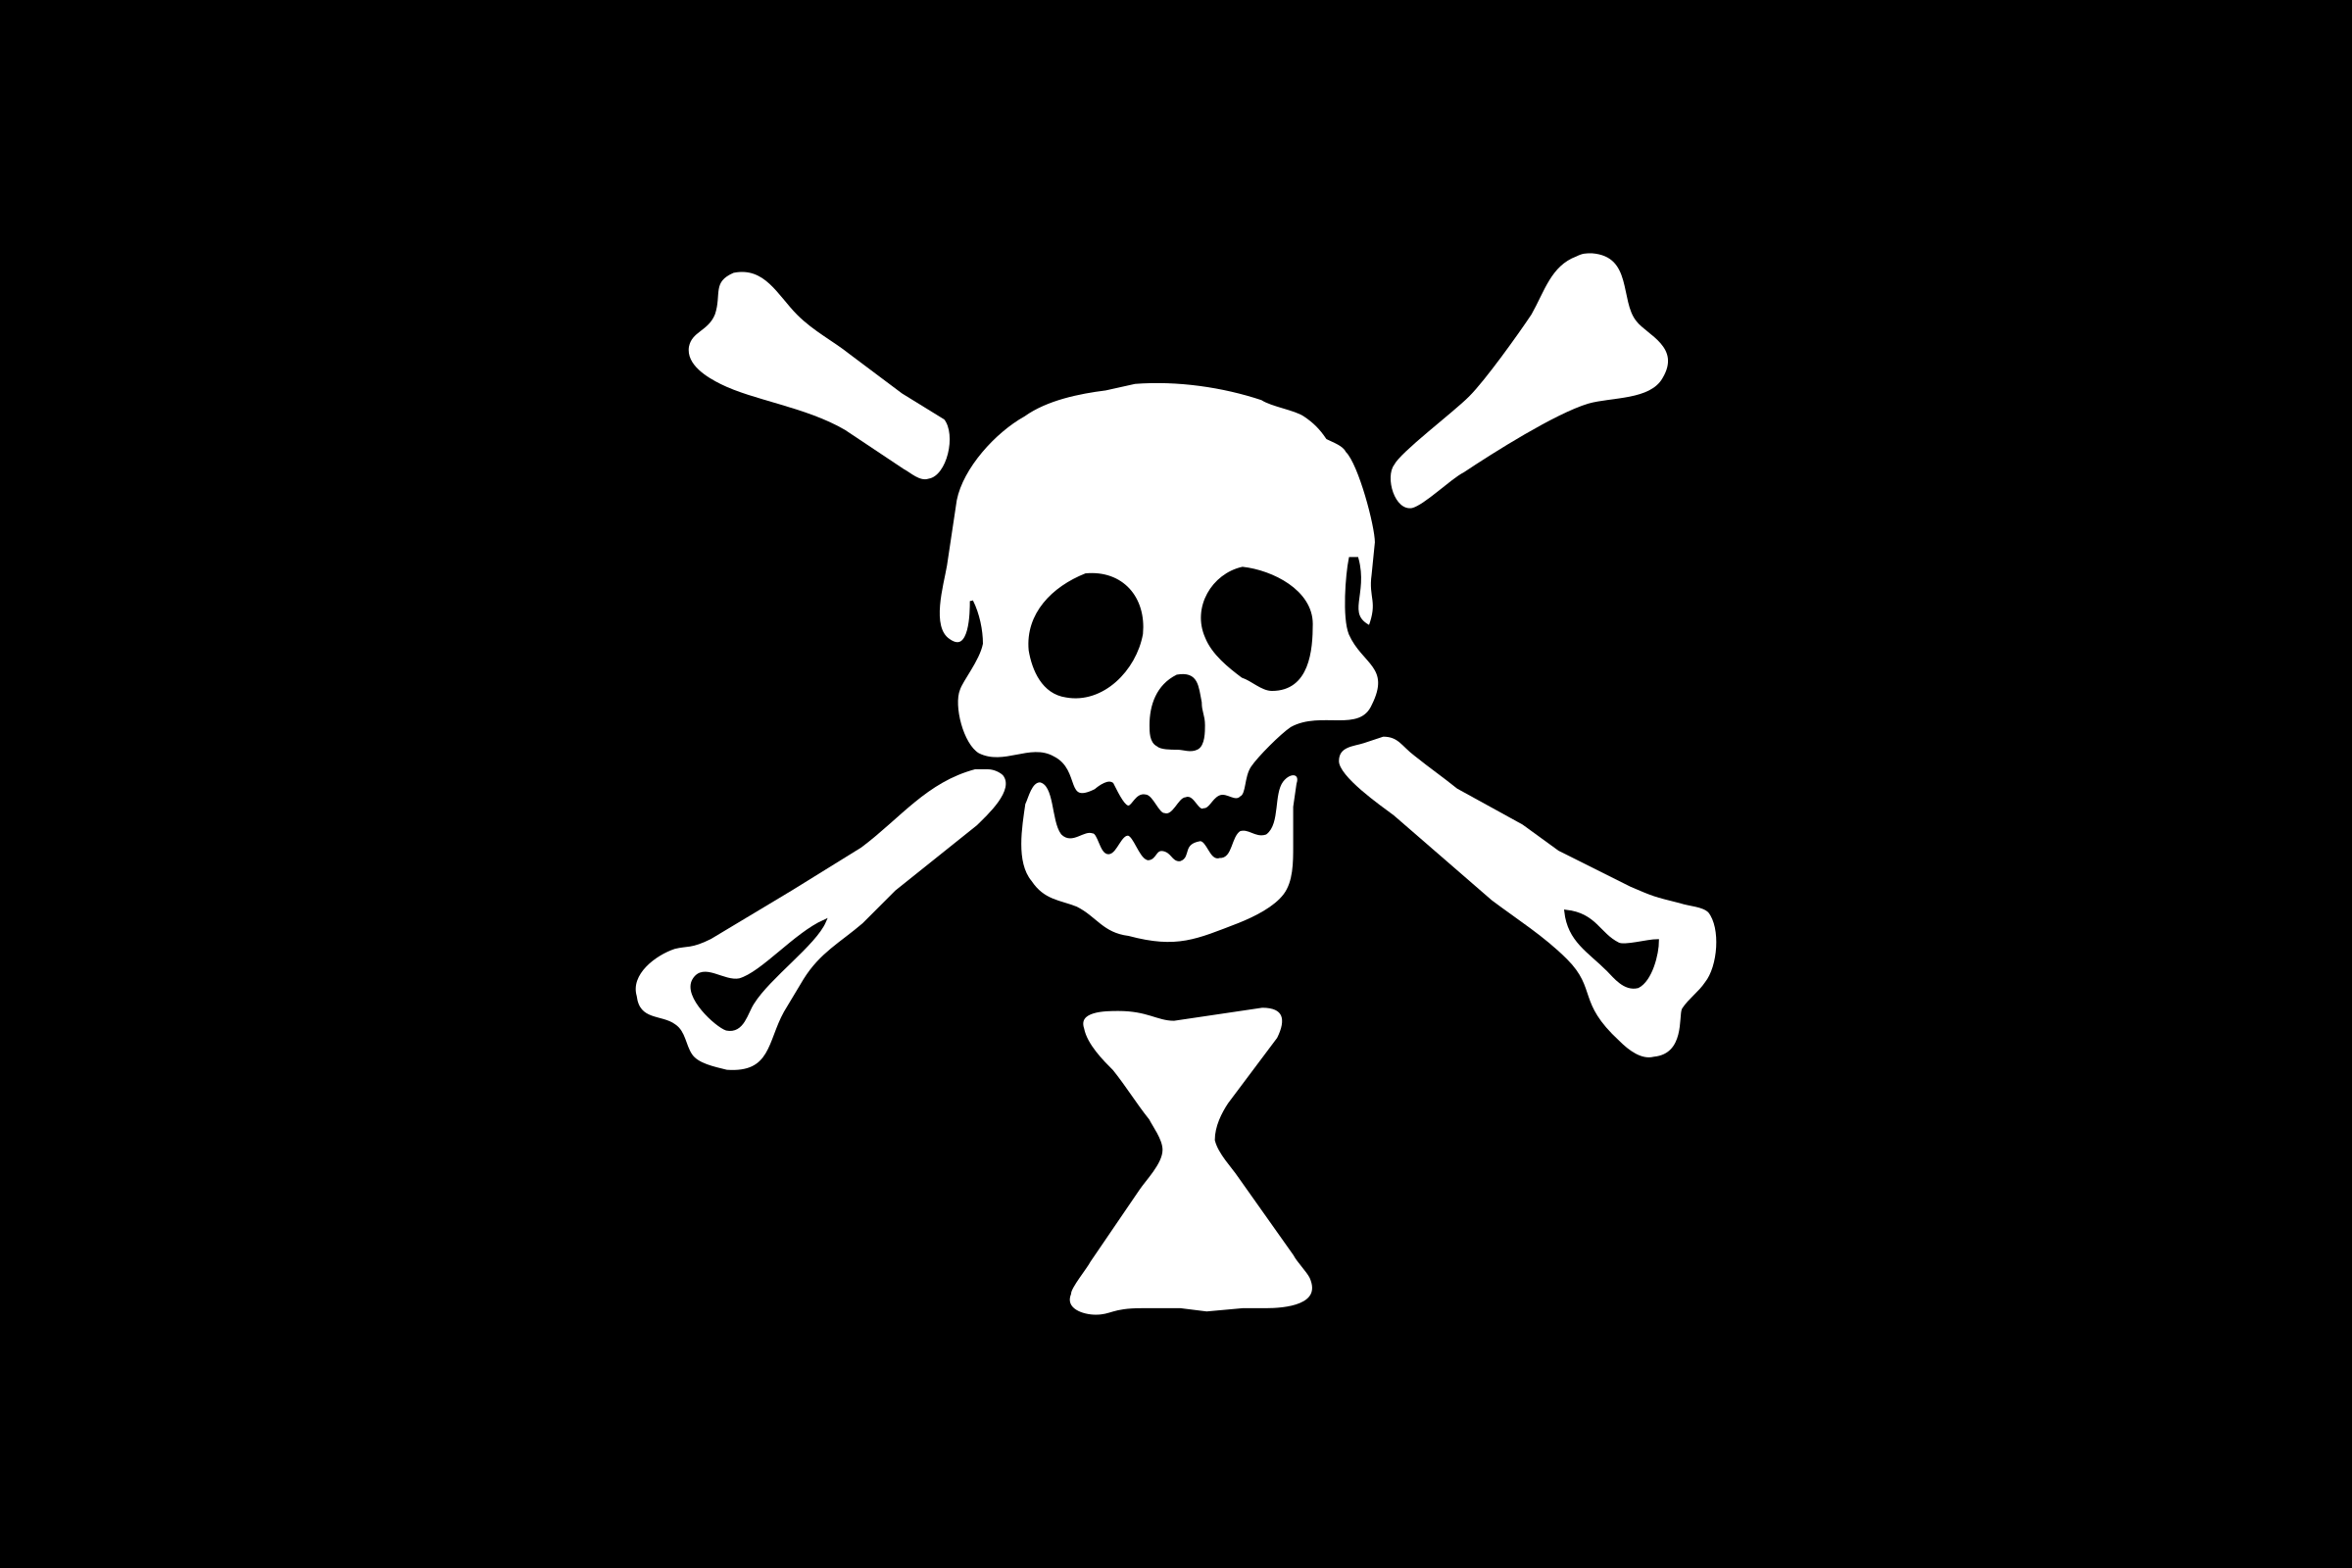 pirate flag - Emanuel Wynne by Anonymous